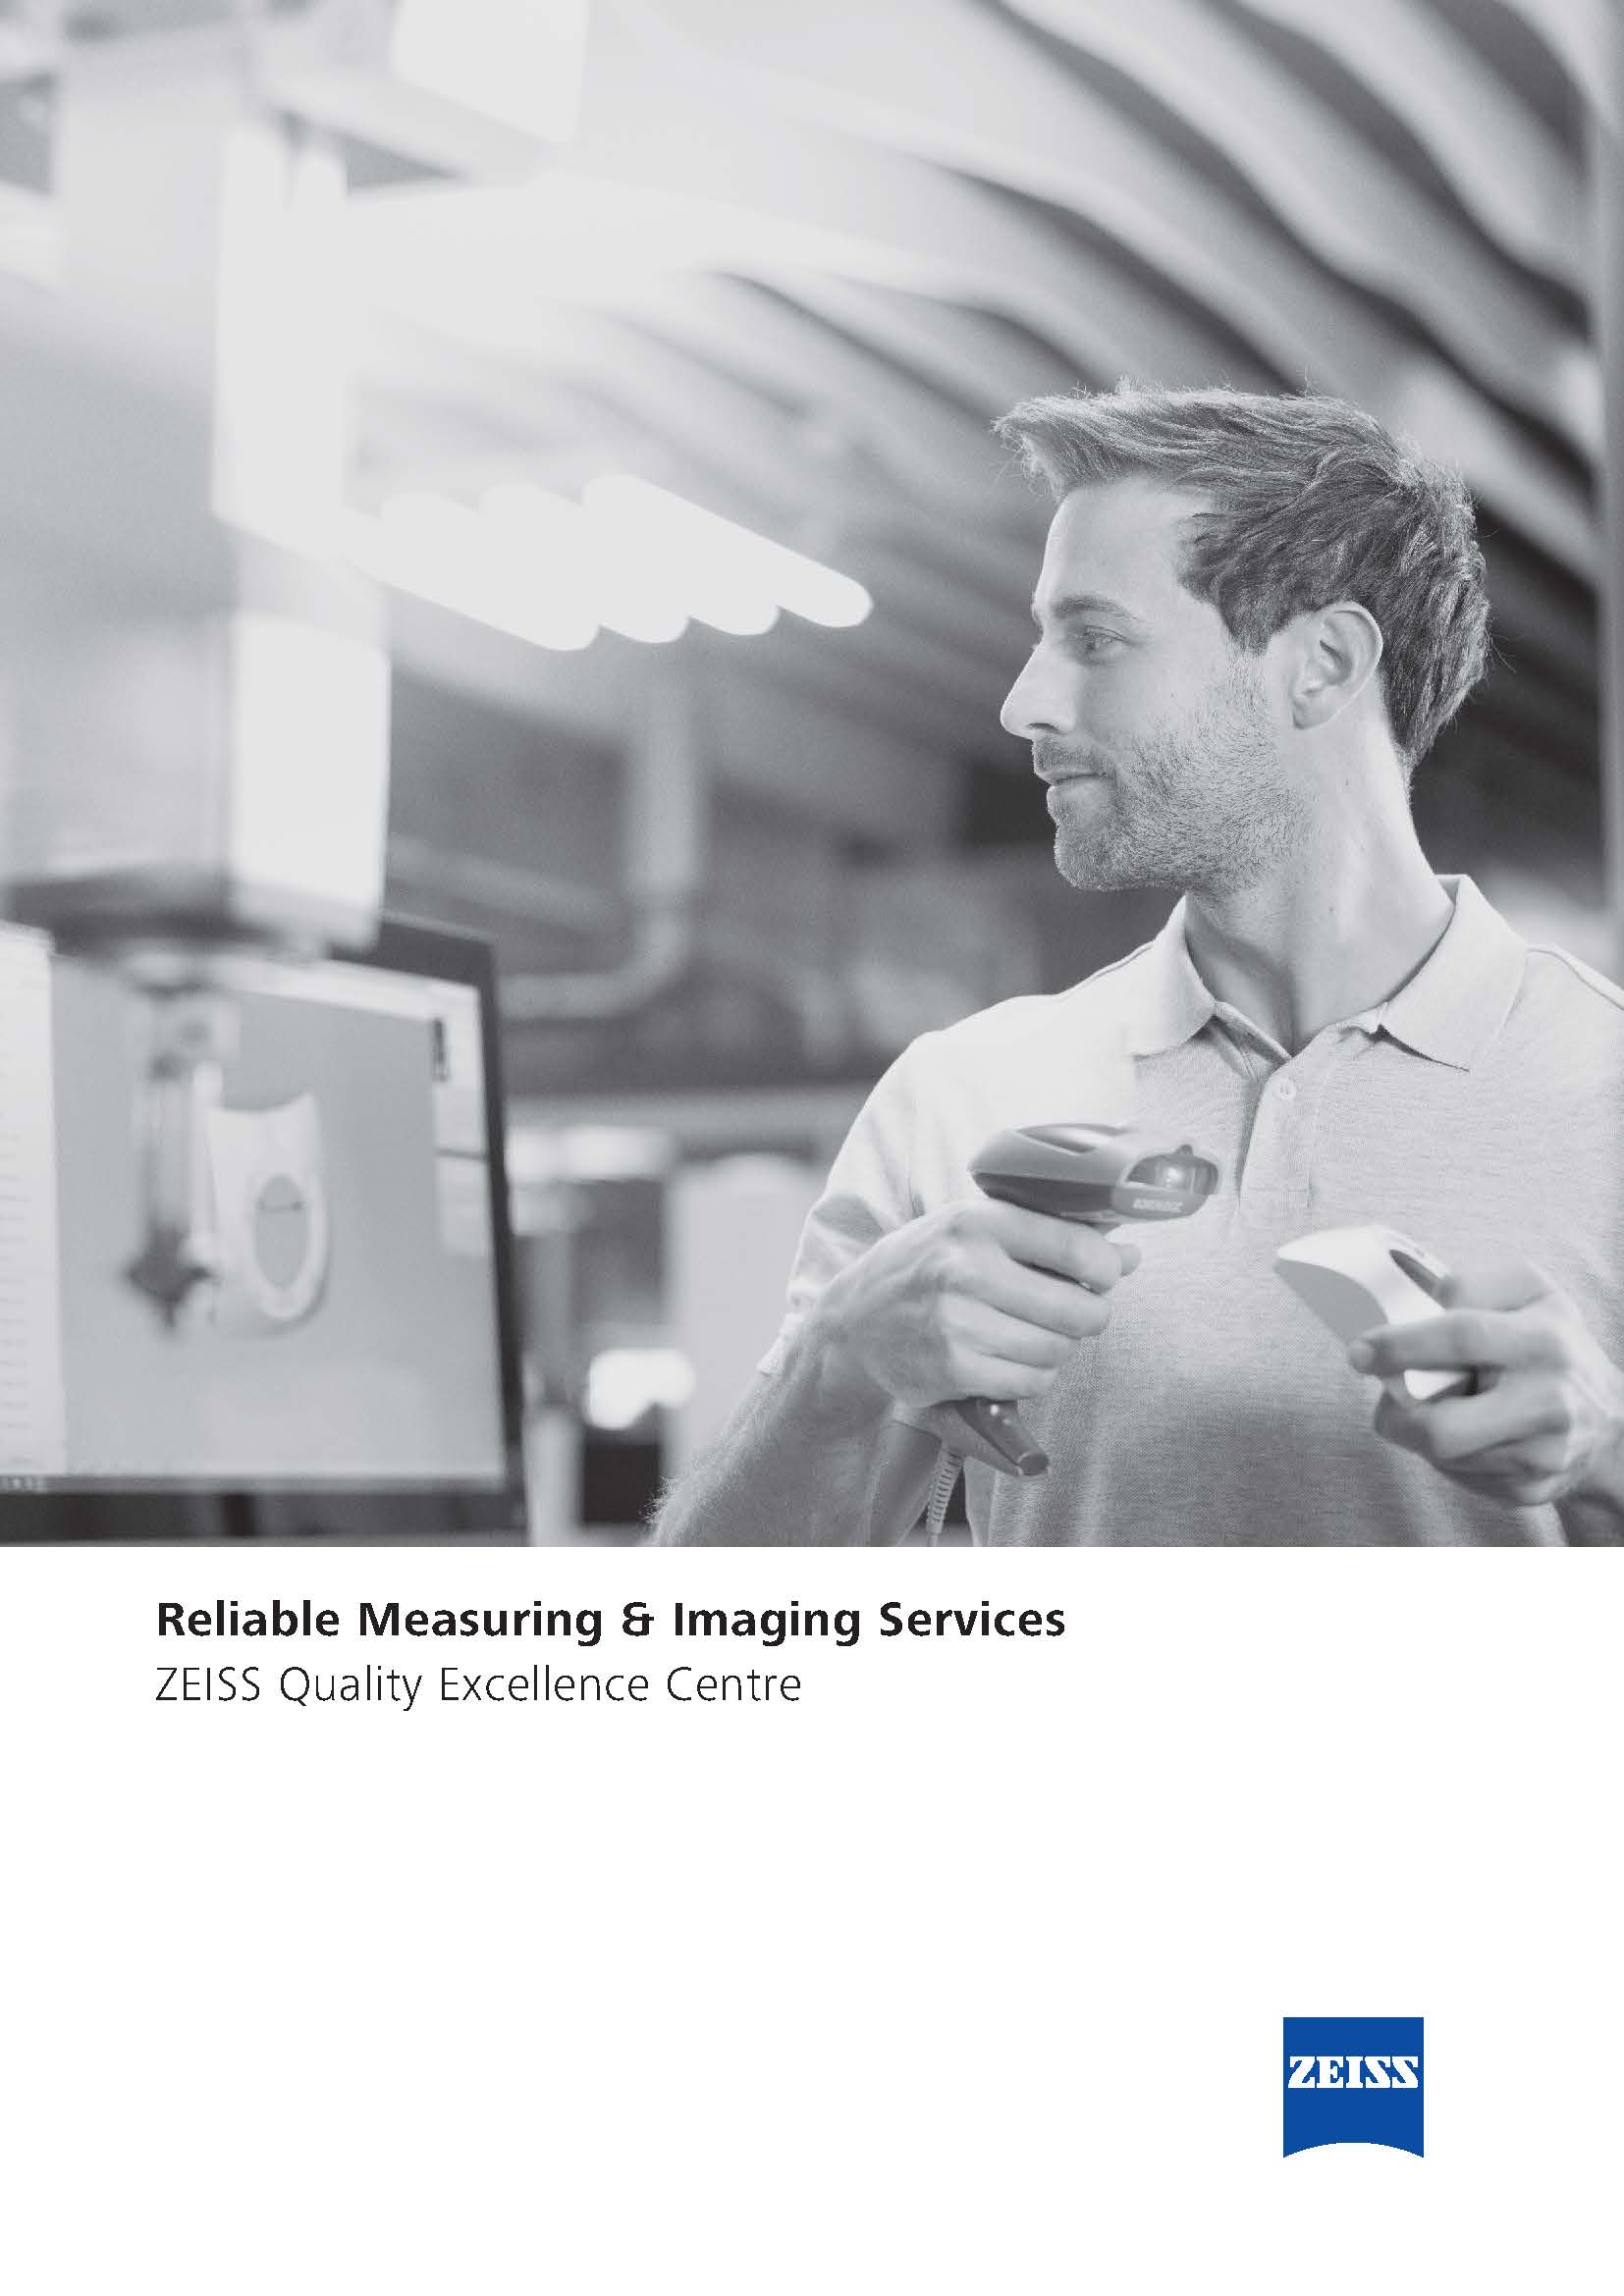 Reliable Measuring & Imaging Services - ZEISS UK Quality Excellence Centre